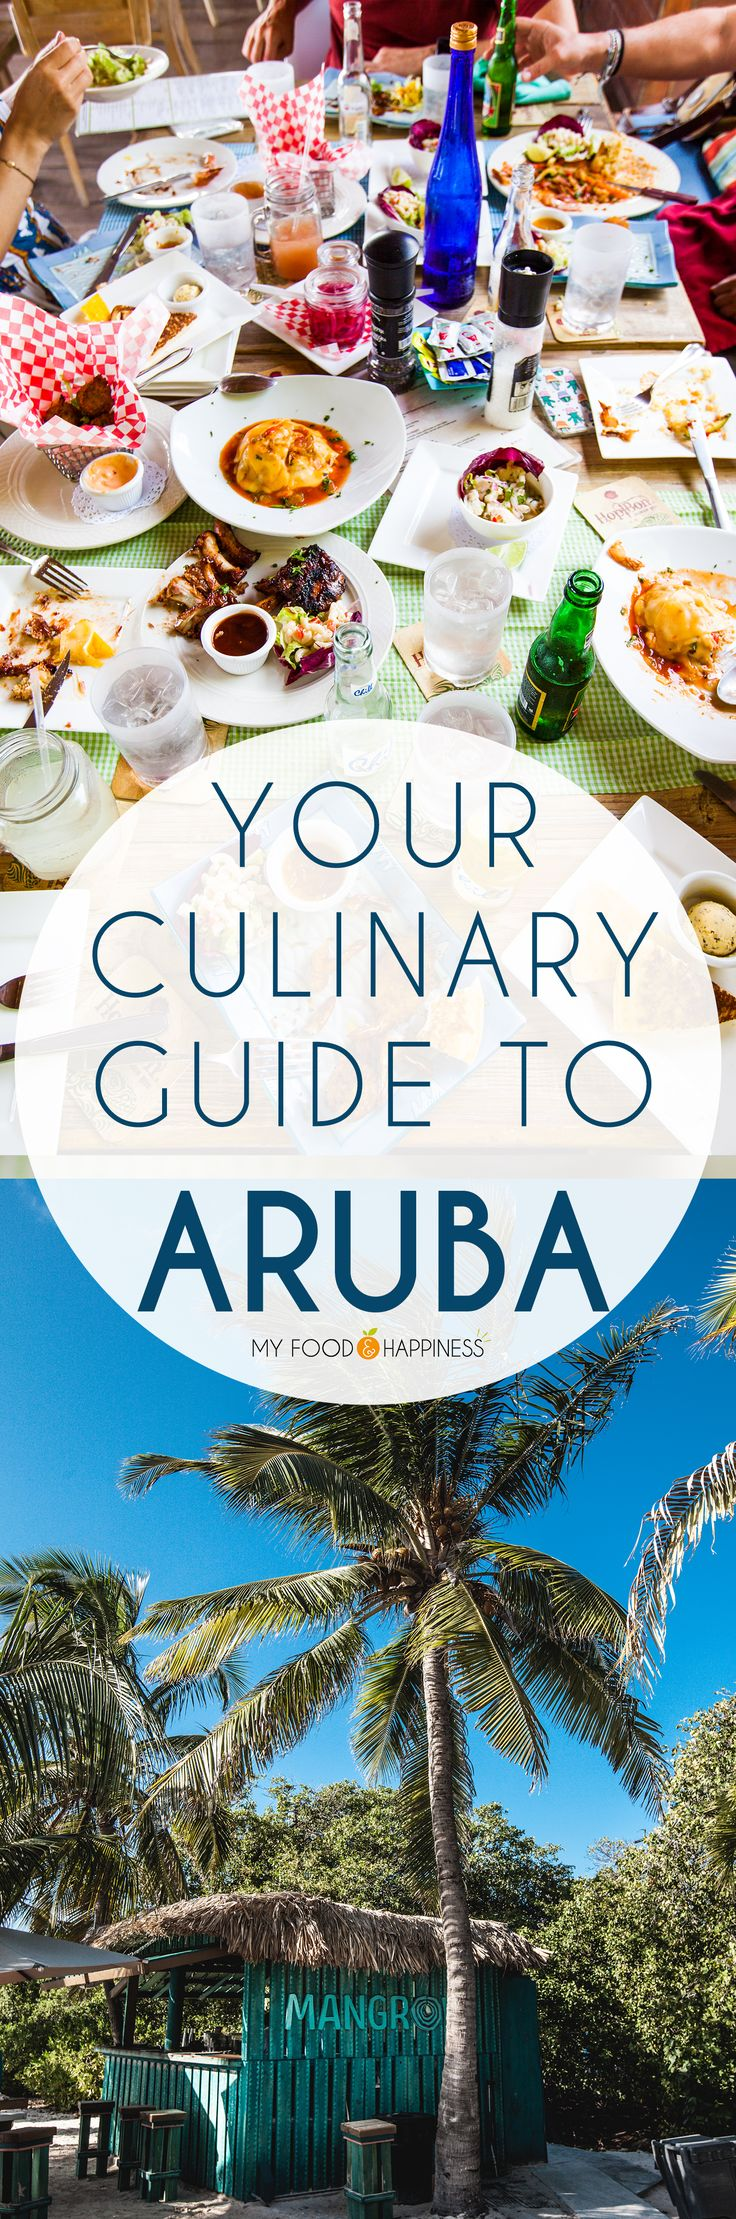 This is your tasty guide to Aruba: local food you must try, restaurant recommendations and how to experience the best of the local cuisine. If you are wondering what to eat in Aruba and where to eat, read ahead.